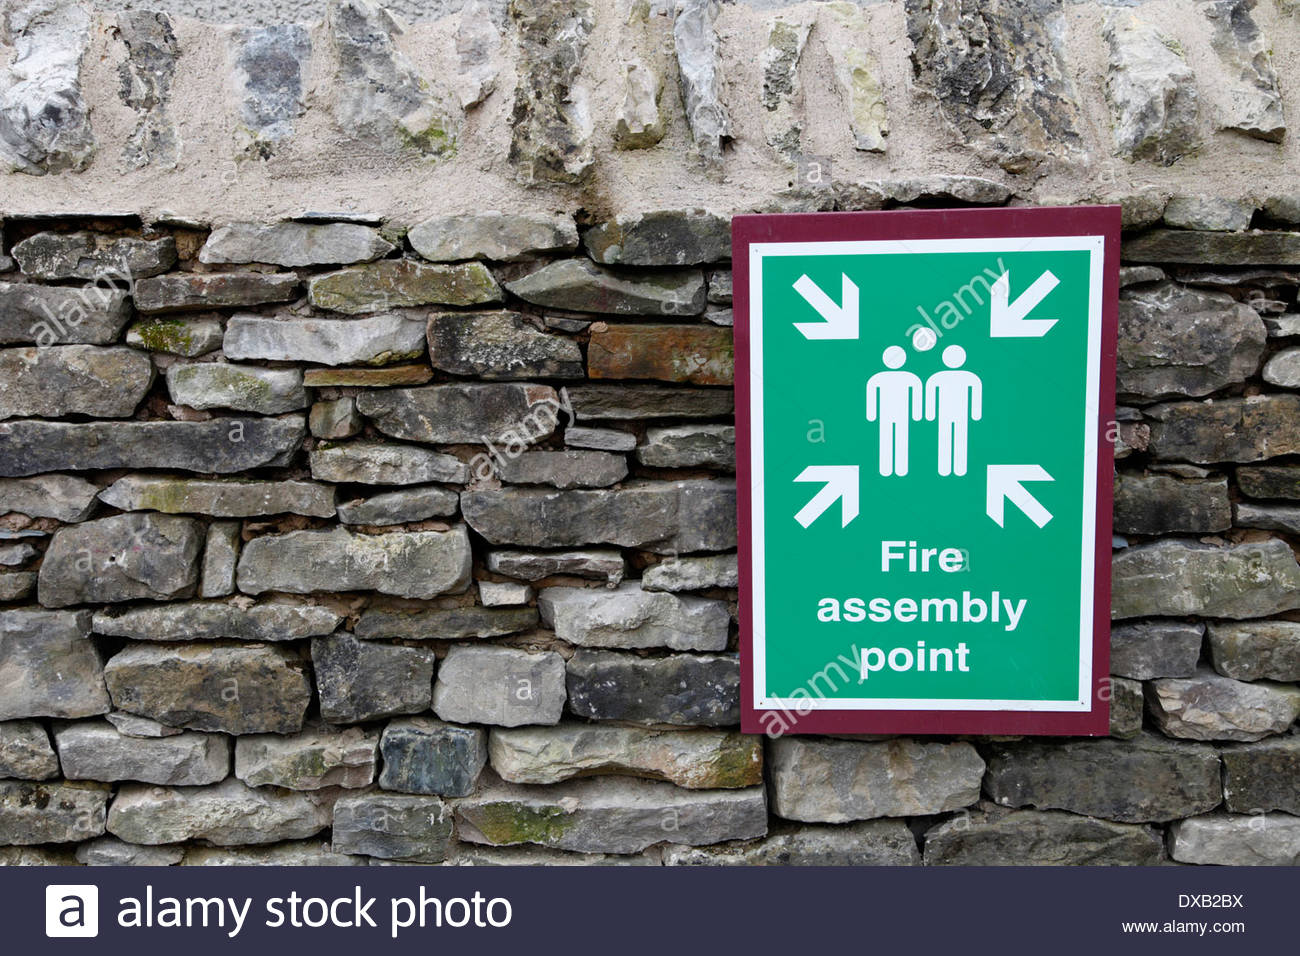 A green and white Fire Assembly Point sign, with stylized people and arrows, attached to a stone wall. - Stock Image